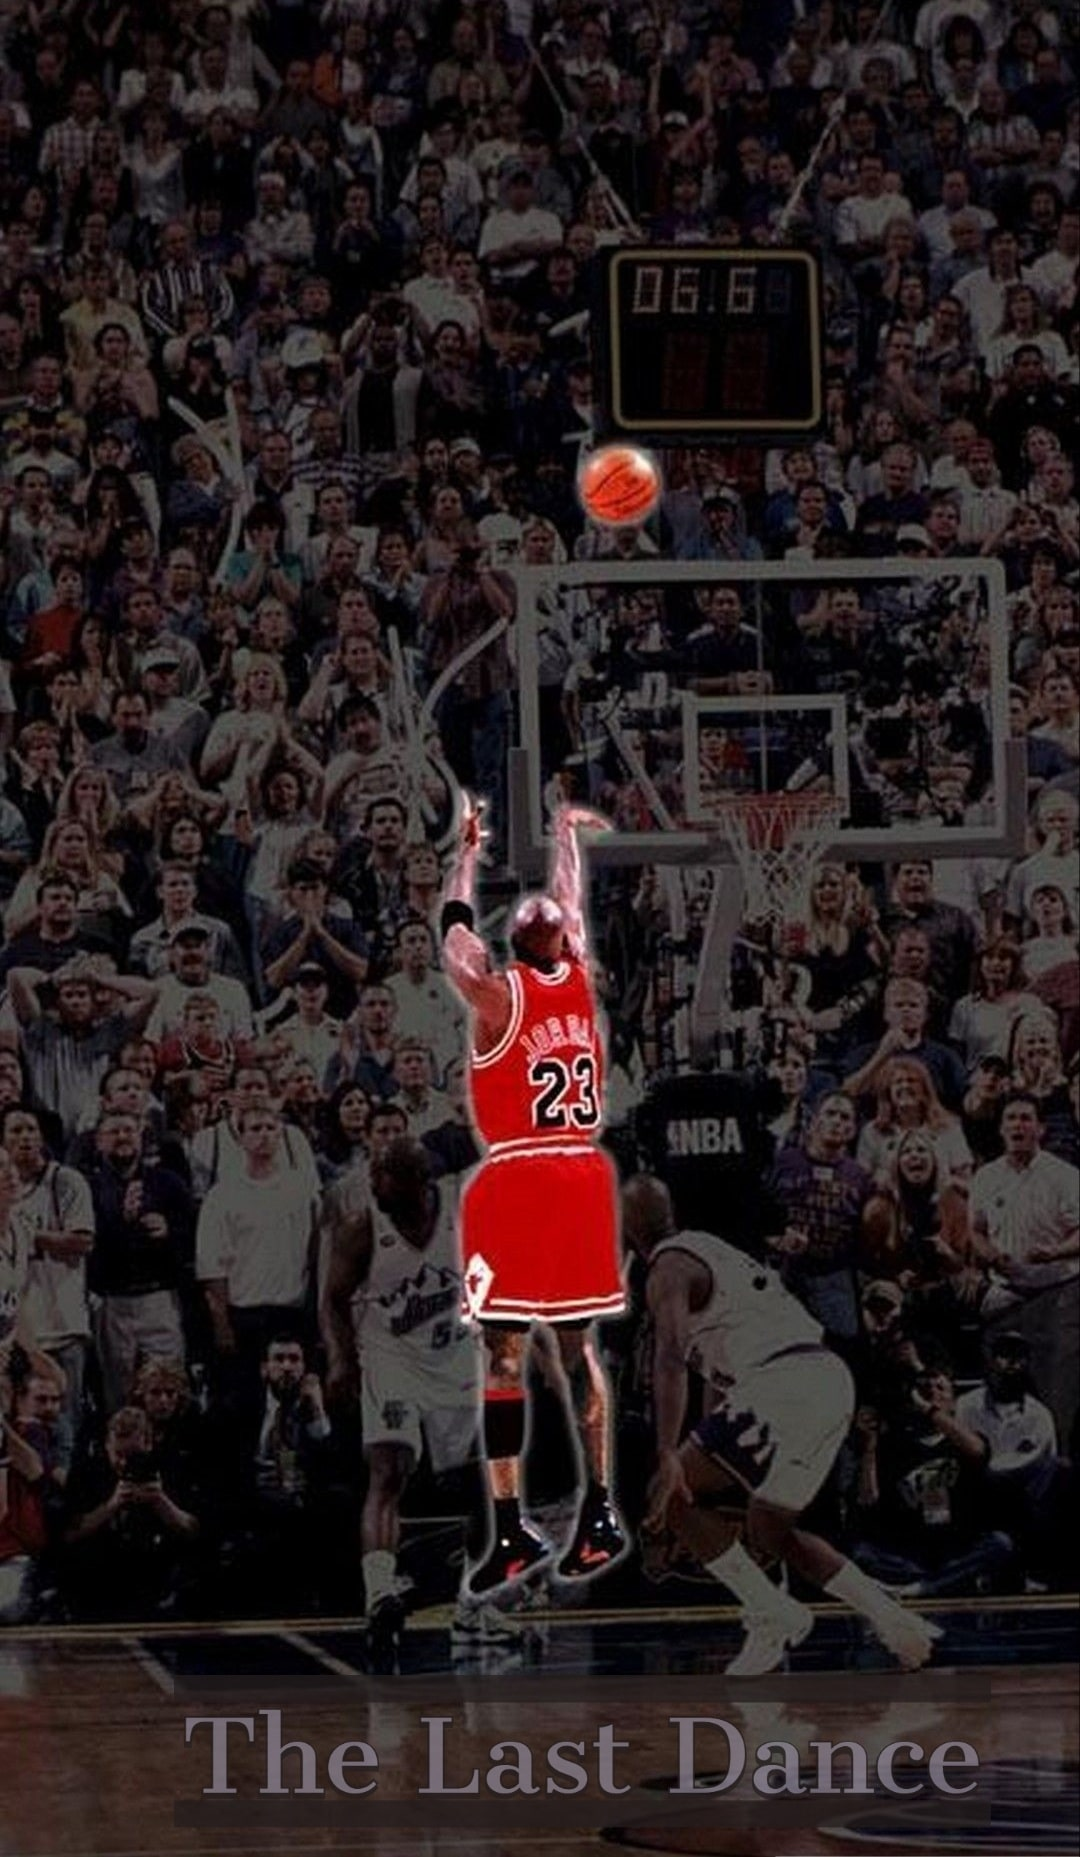 Michael Jordan Last Dance Wallpaper Kolpaper Awesome Free Hd Wallpapers